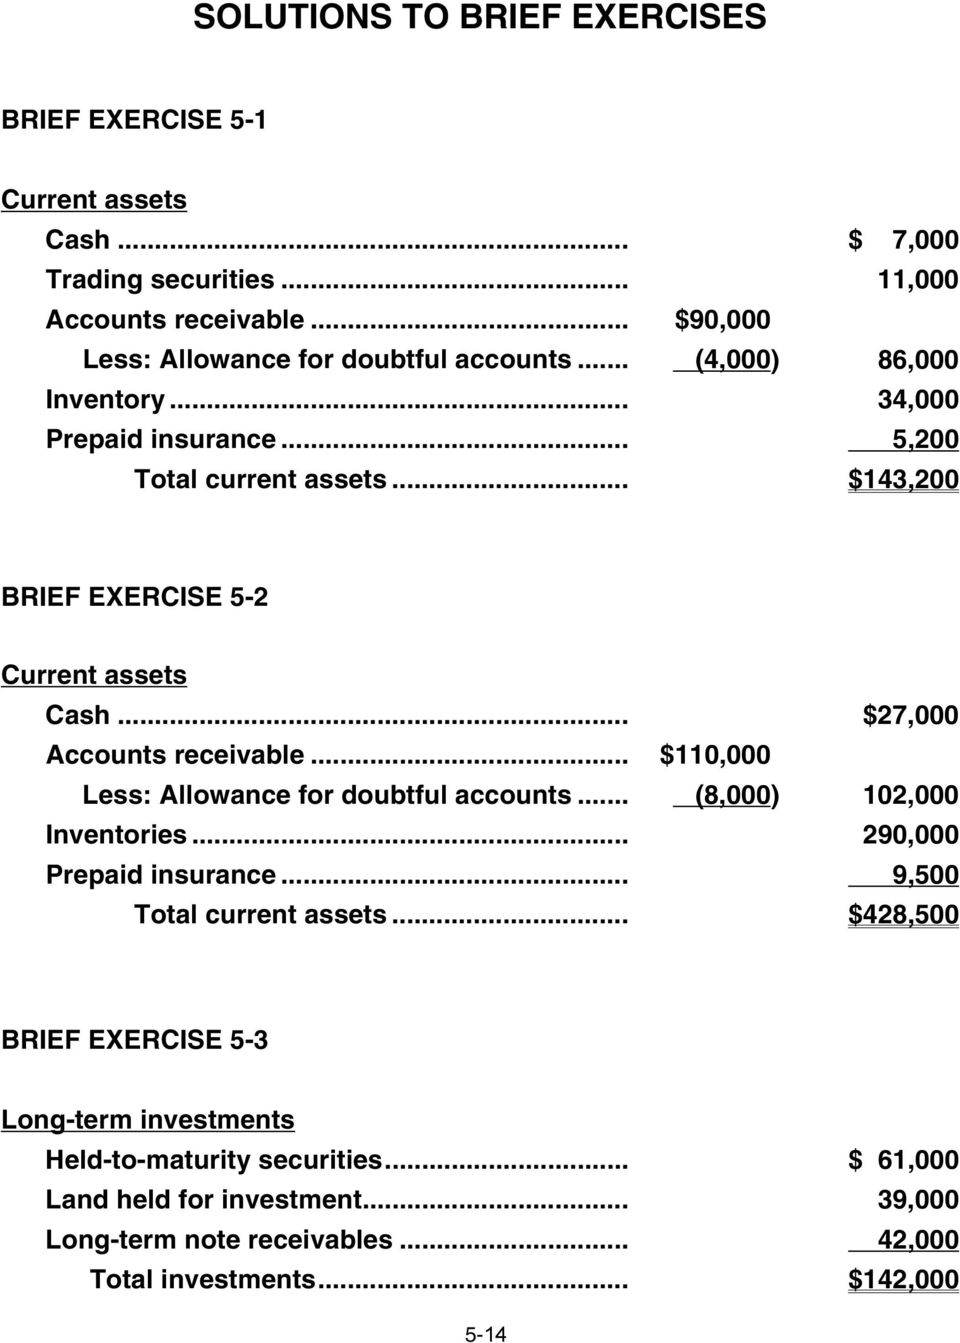 .. $143,200 BRIEF EXERCISE 5-2 Current assets Cash... $27,000 Accounts receivable... $110,000 Less: Allowance for doubtful accounts... (8,000) 102,000 Inventories.